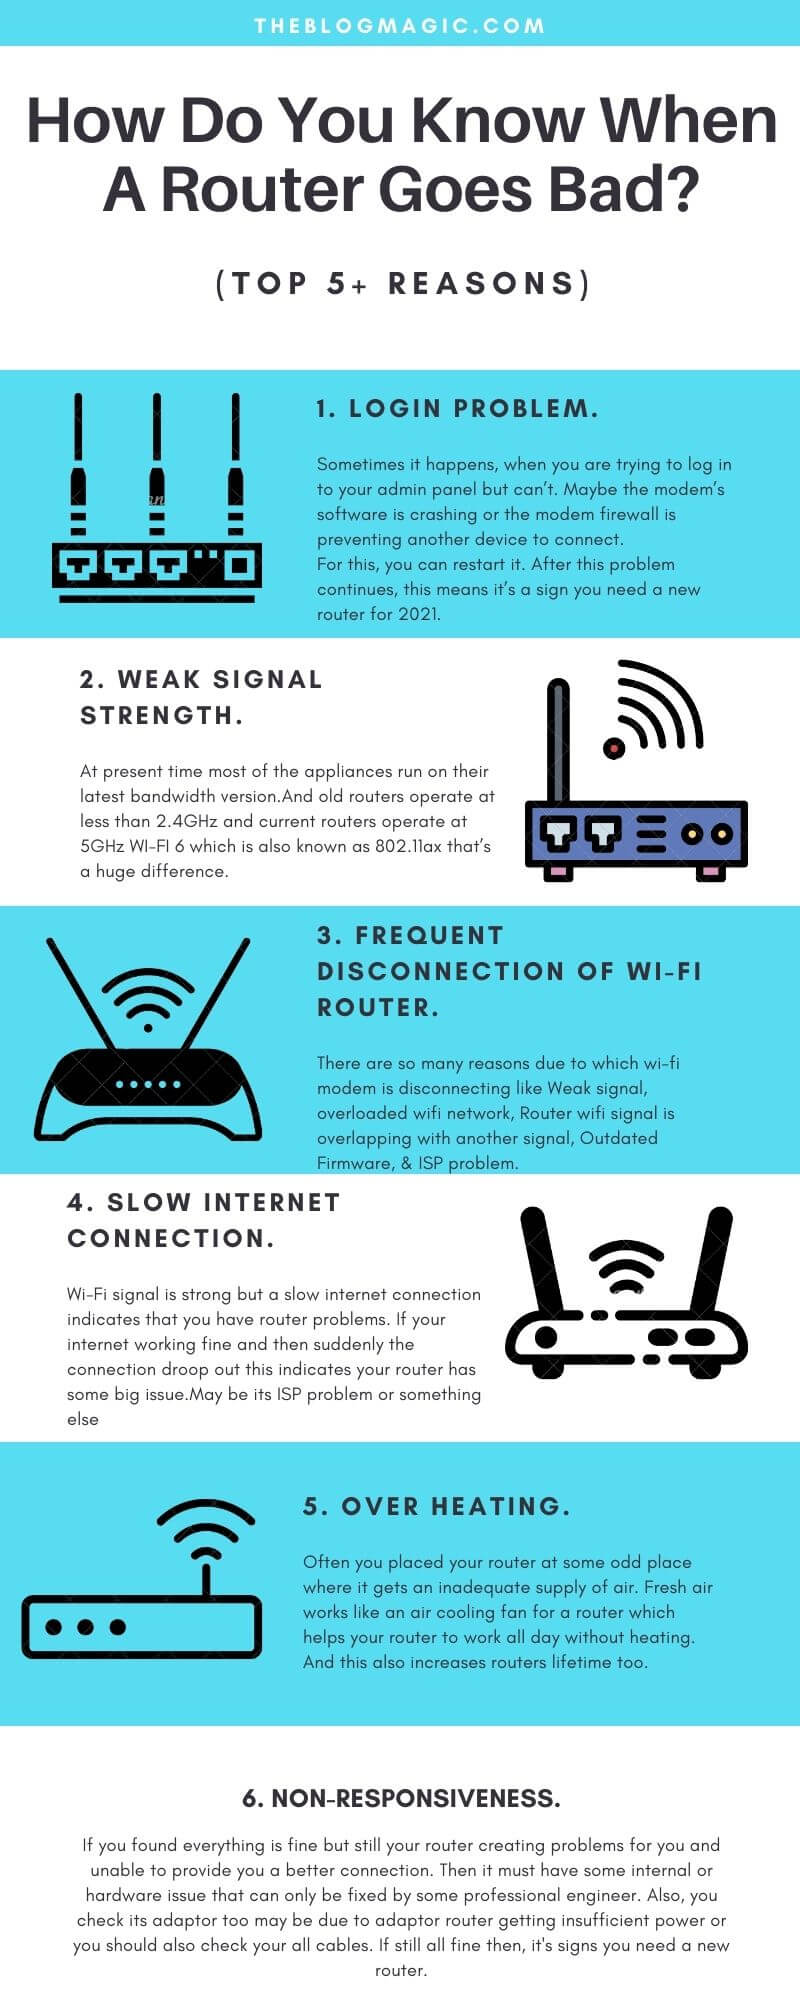 How do you know When a router goes bad Infographic?